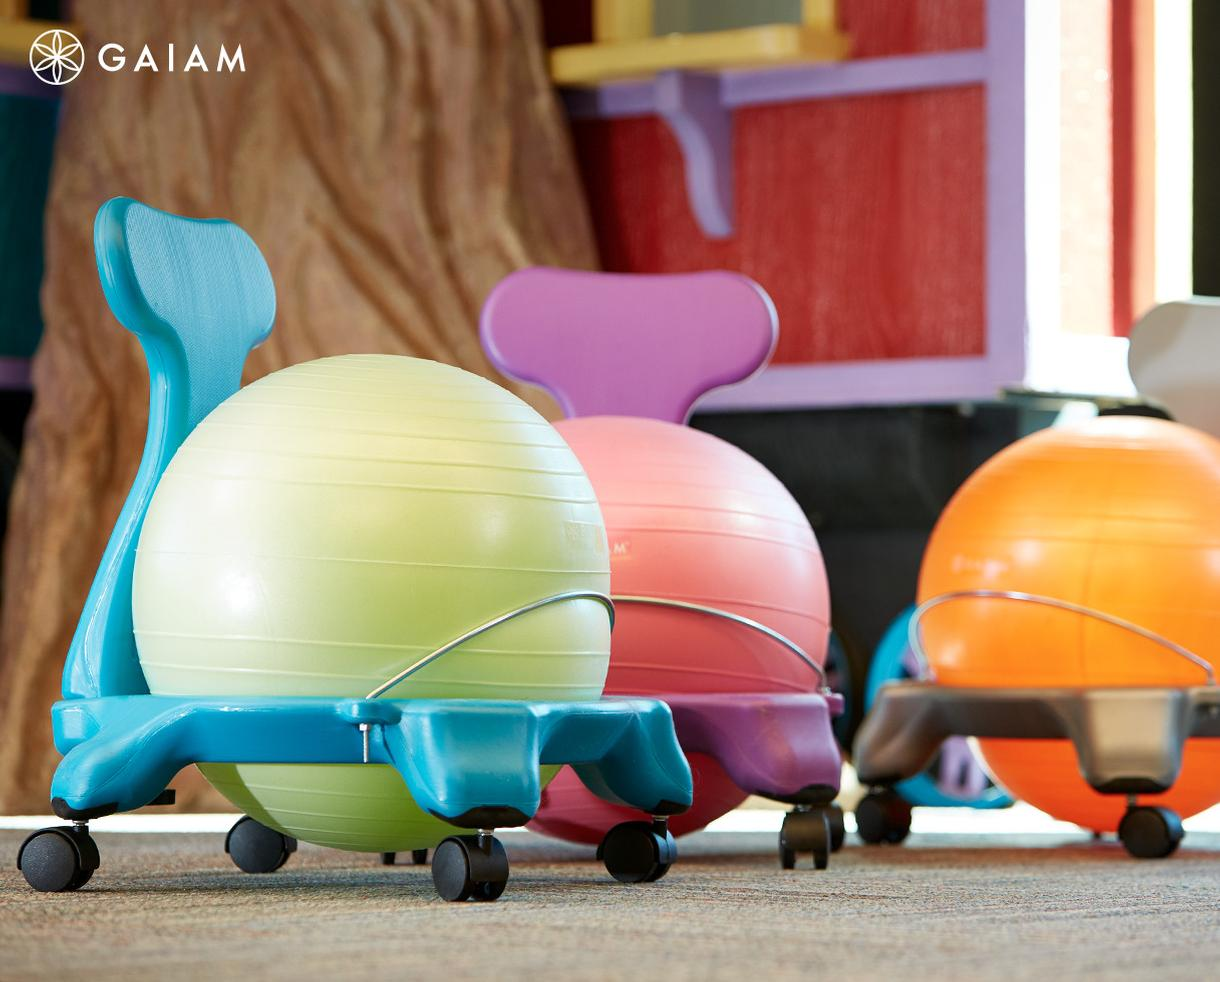 20% Off Gaiam Yoga Ball Chairs & Select Active Sitting Collection